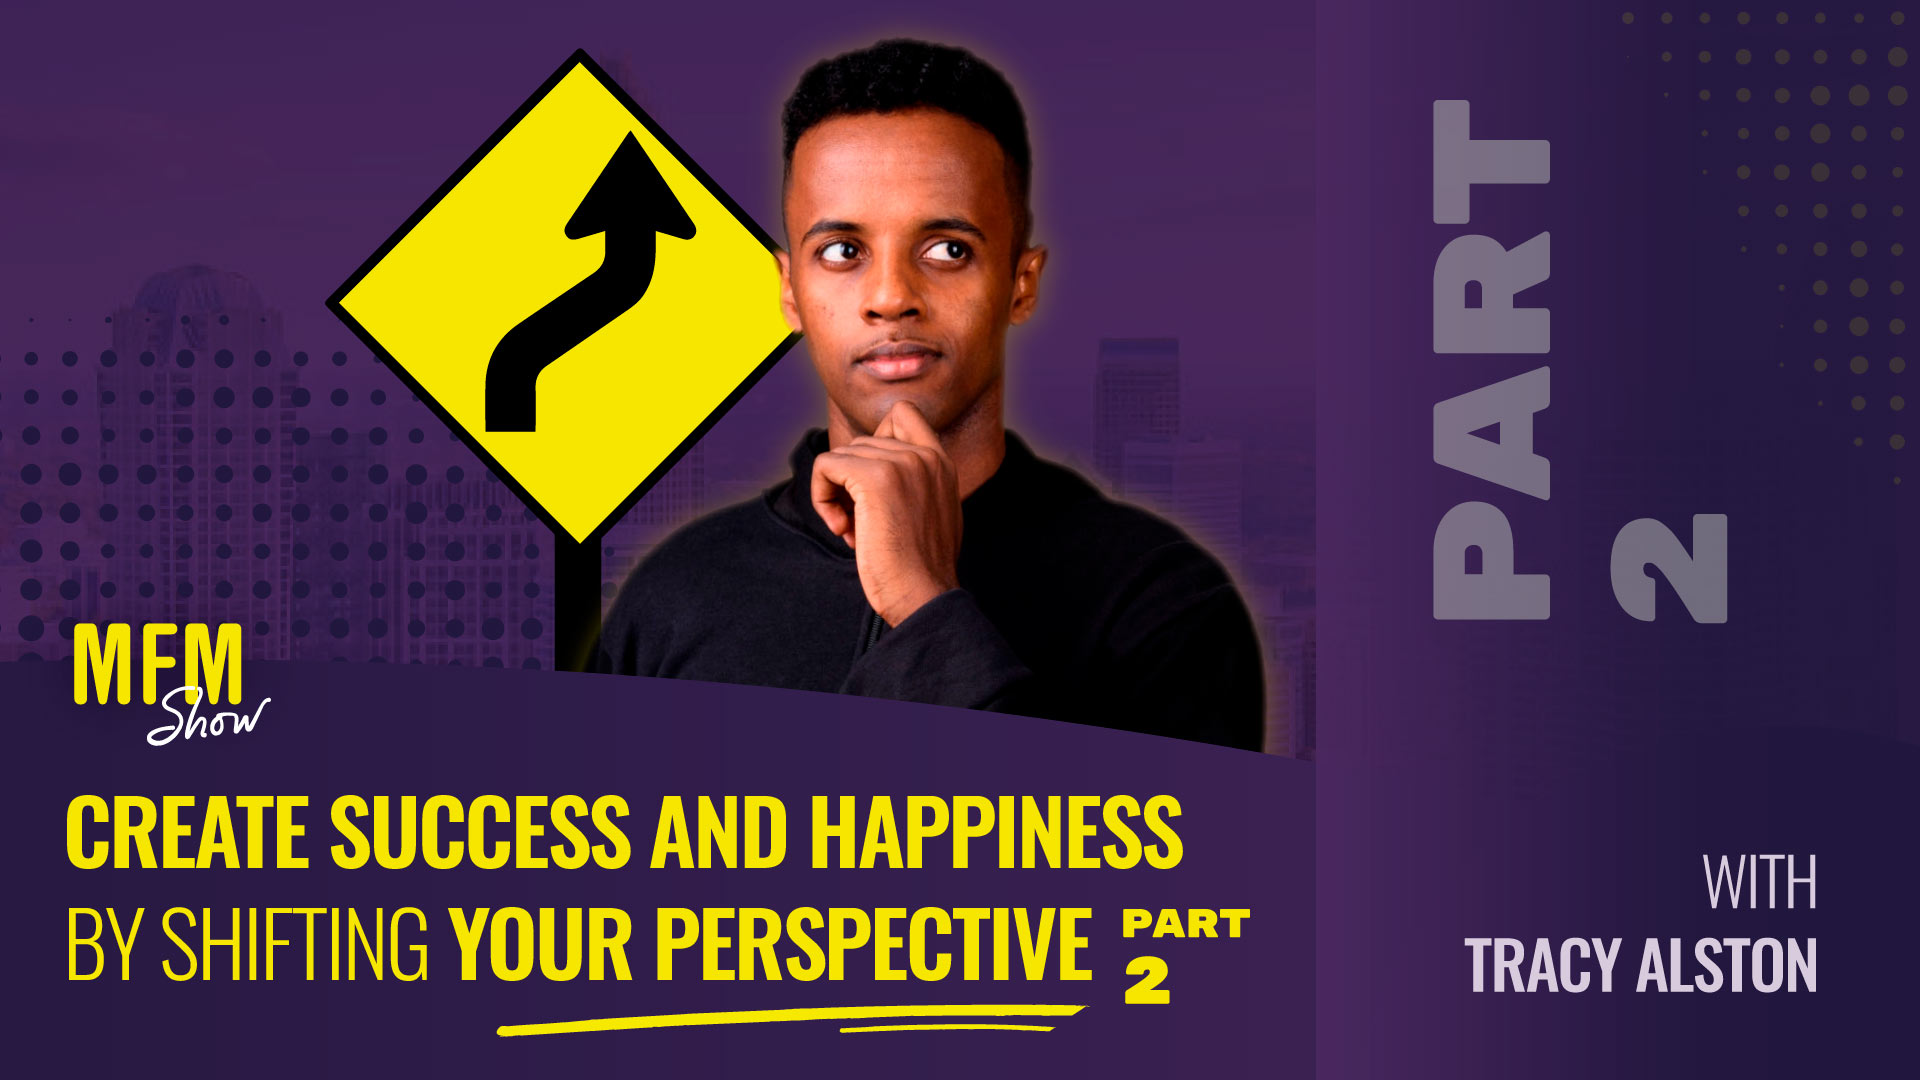 Create Success and Happiness by Shifting Your Perspective (PART 2)_MFM_